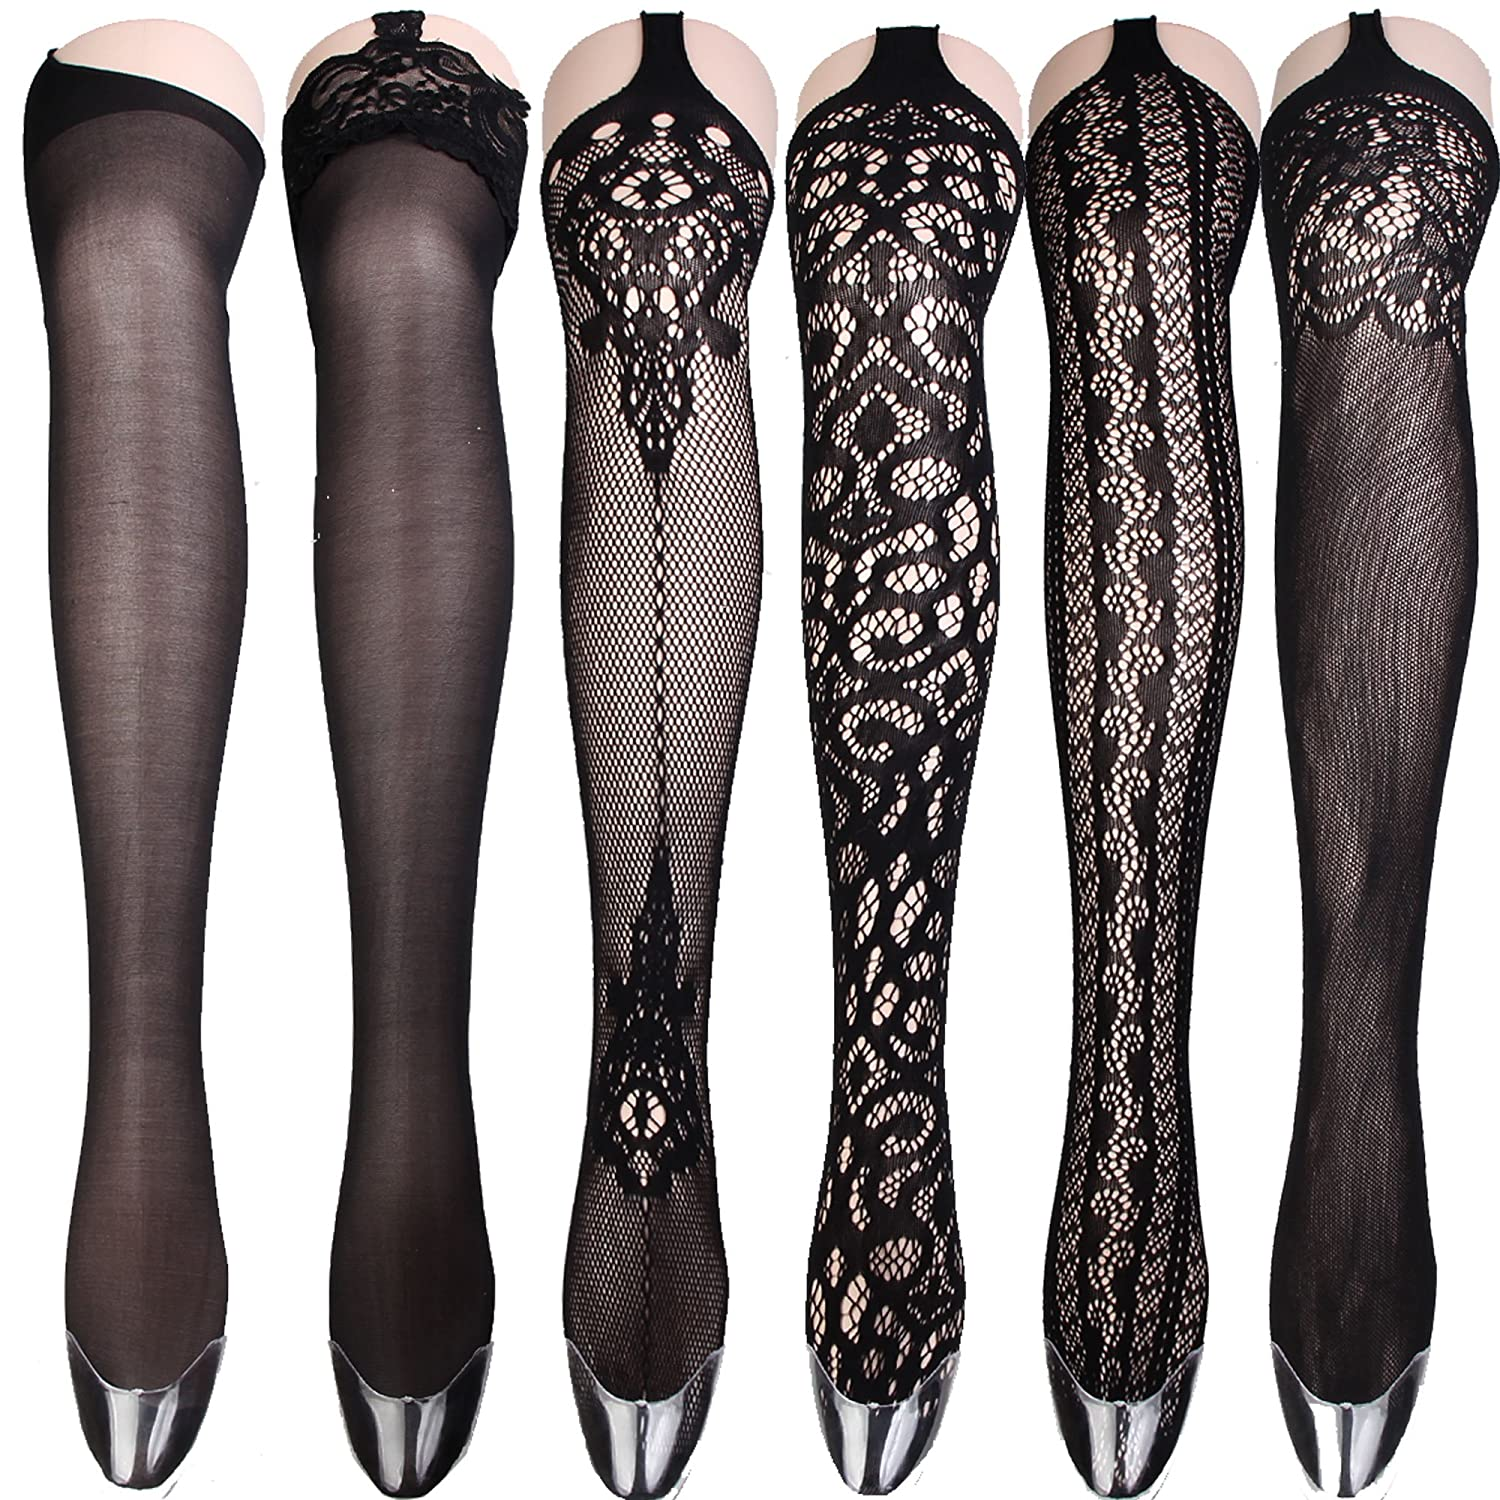 2fdfaec3c Women Sexy Big Cross Fishnet Tights Large Mesh Sheer Stockings Hollow Out Pantyhose  Hosiery (4pcs) at Amazon Women s Clothing store